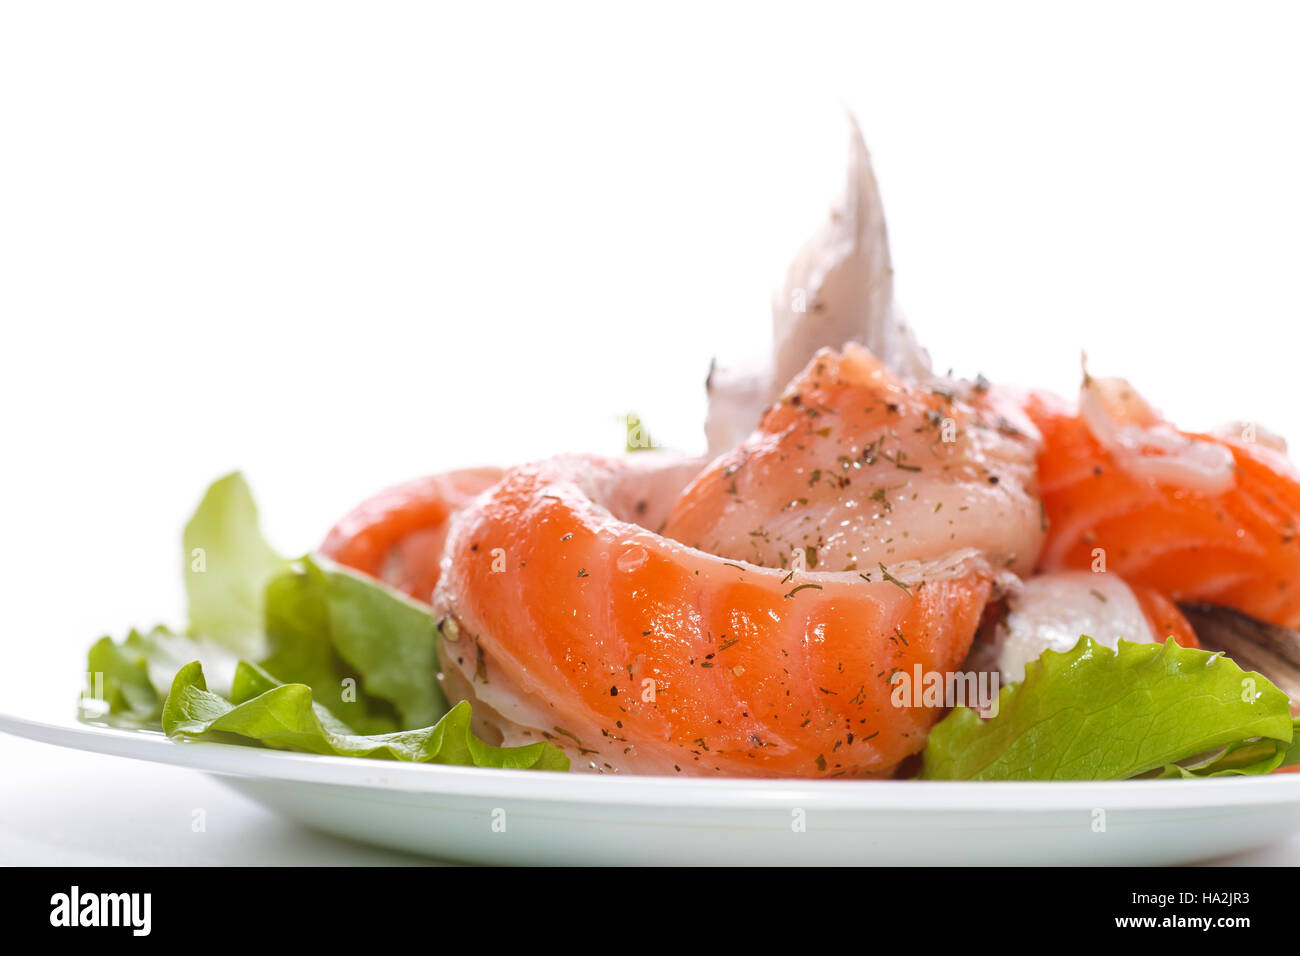 salted salmon bellies with spices on a white background - Stock Image